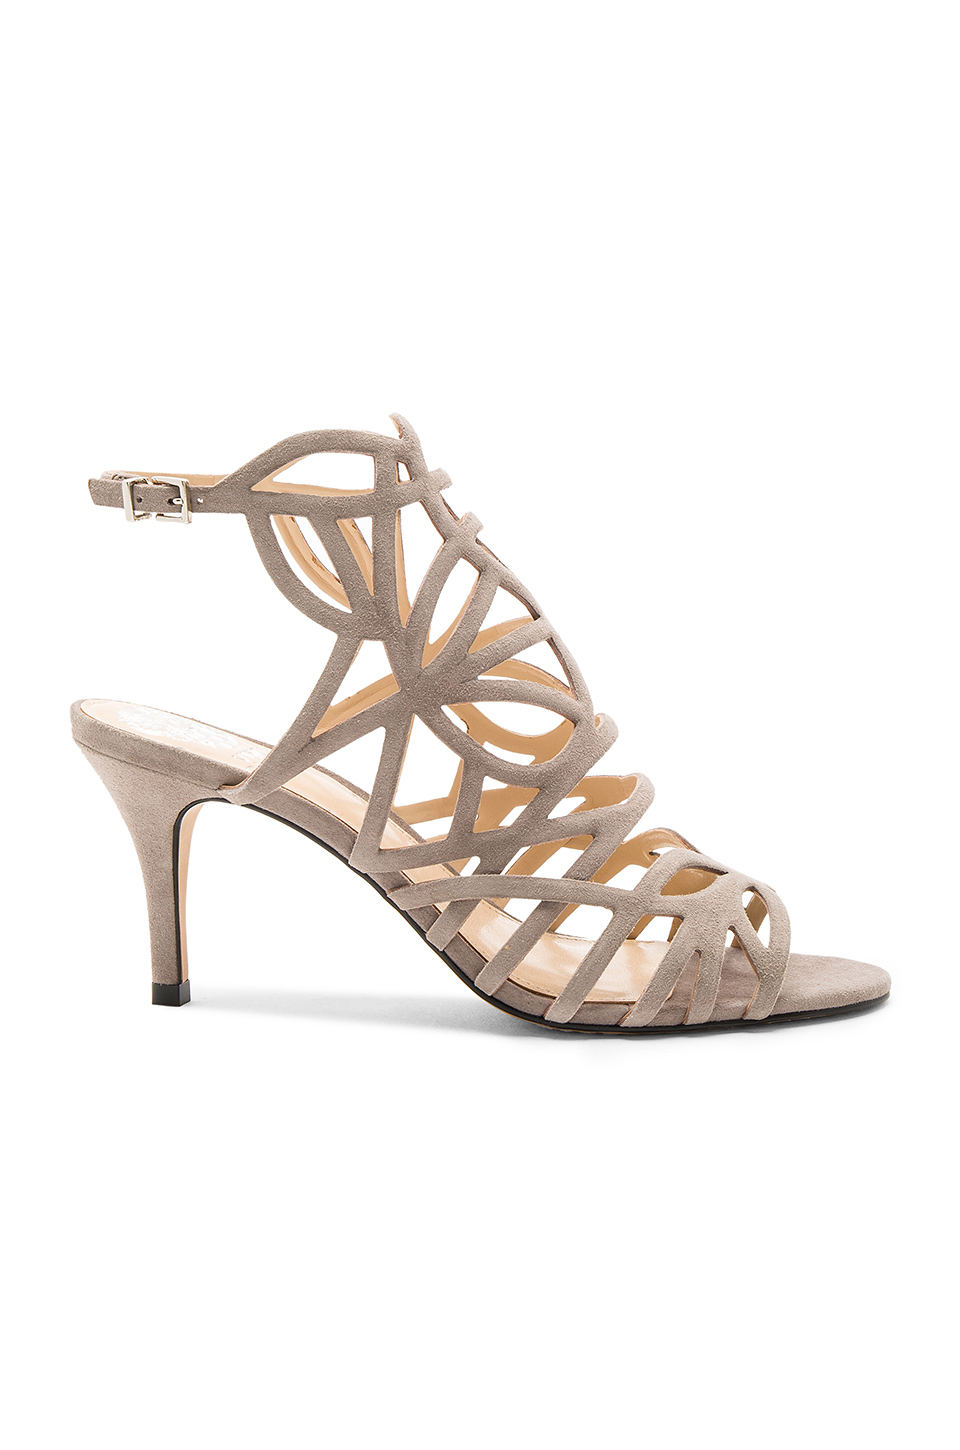 Vince Camuto Pelena Heel in Ancient Stone